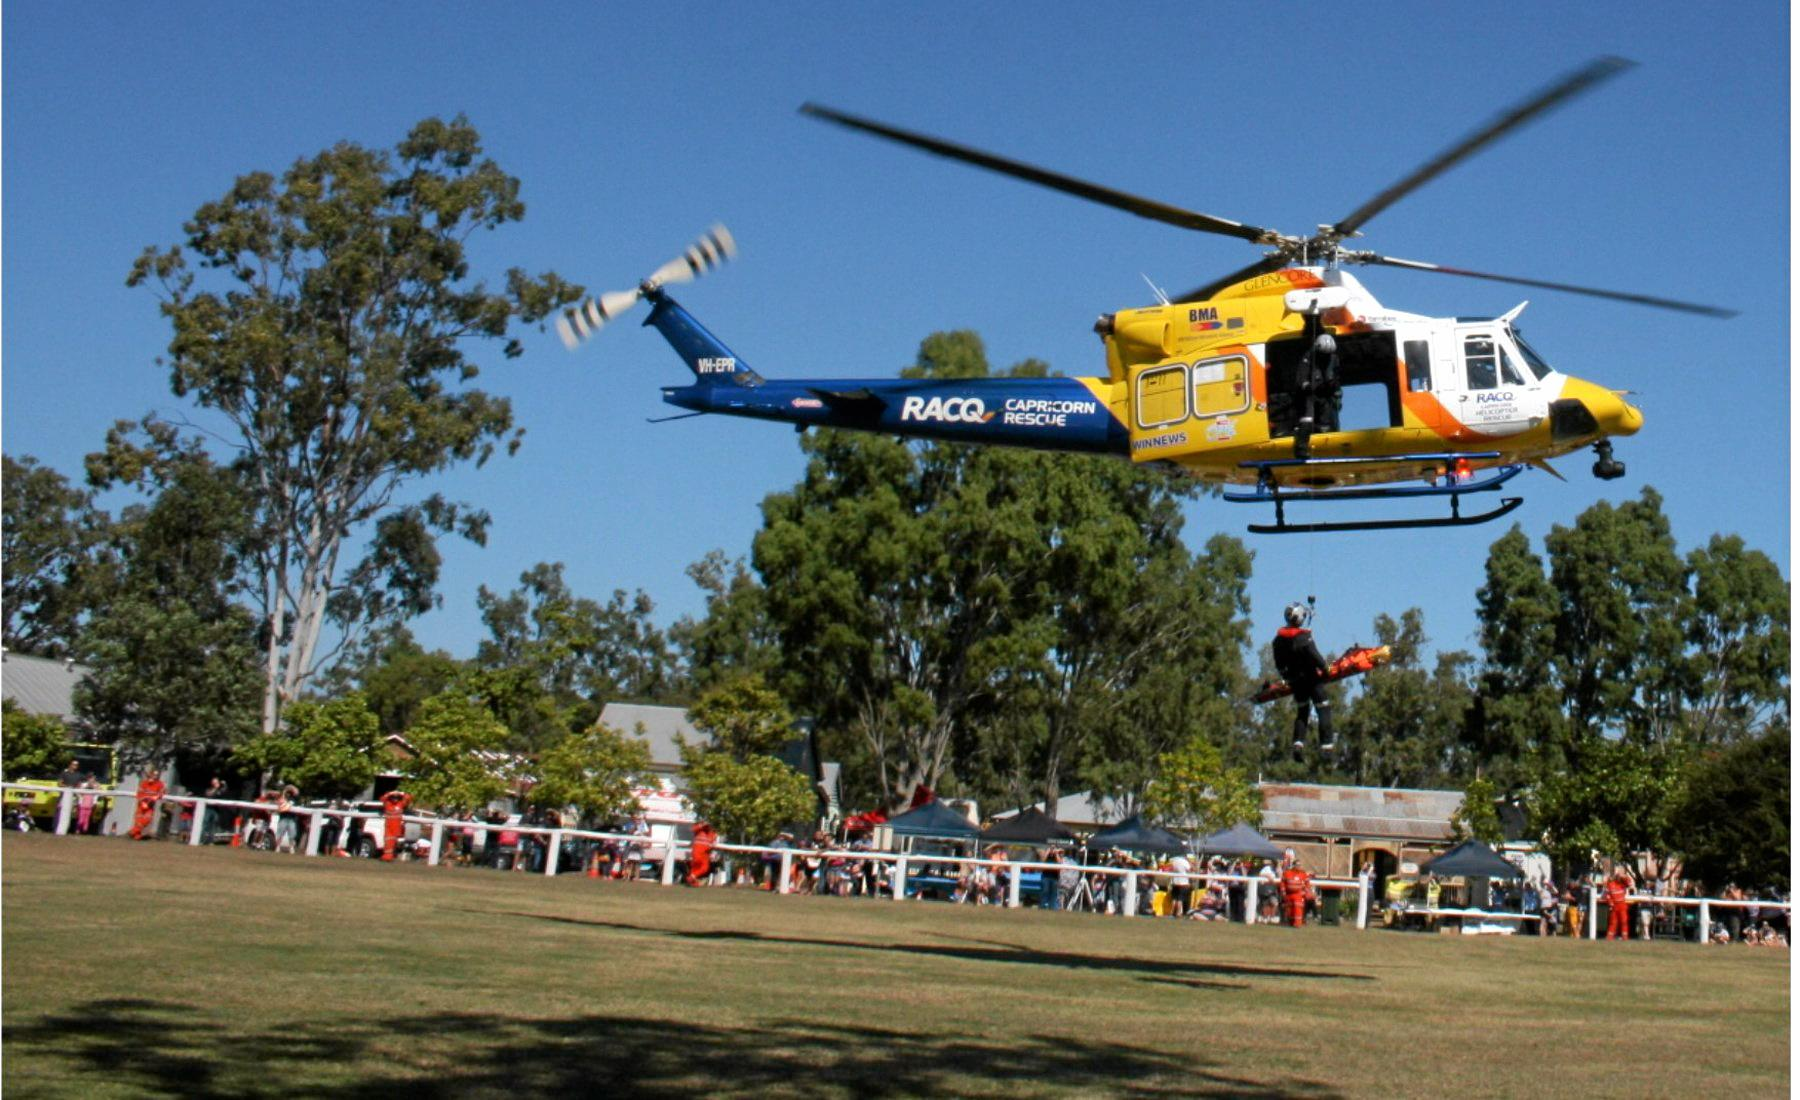 The RACQ Capricorn Helicopter Rescue Service display at the Emergency Services Day caught the attention of many at Hertiage Village on Sunday.  Photo Contributed / The Capricorn Coast Mirror